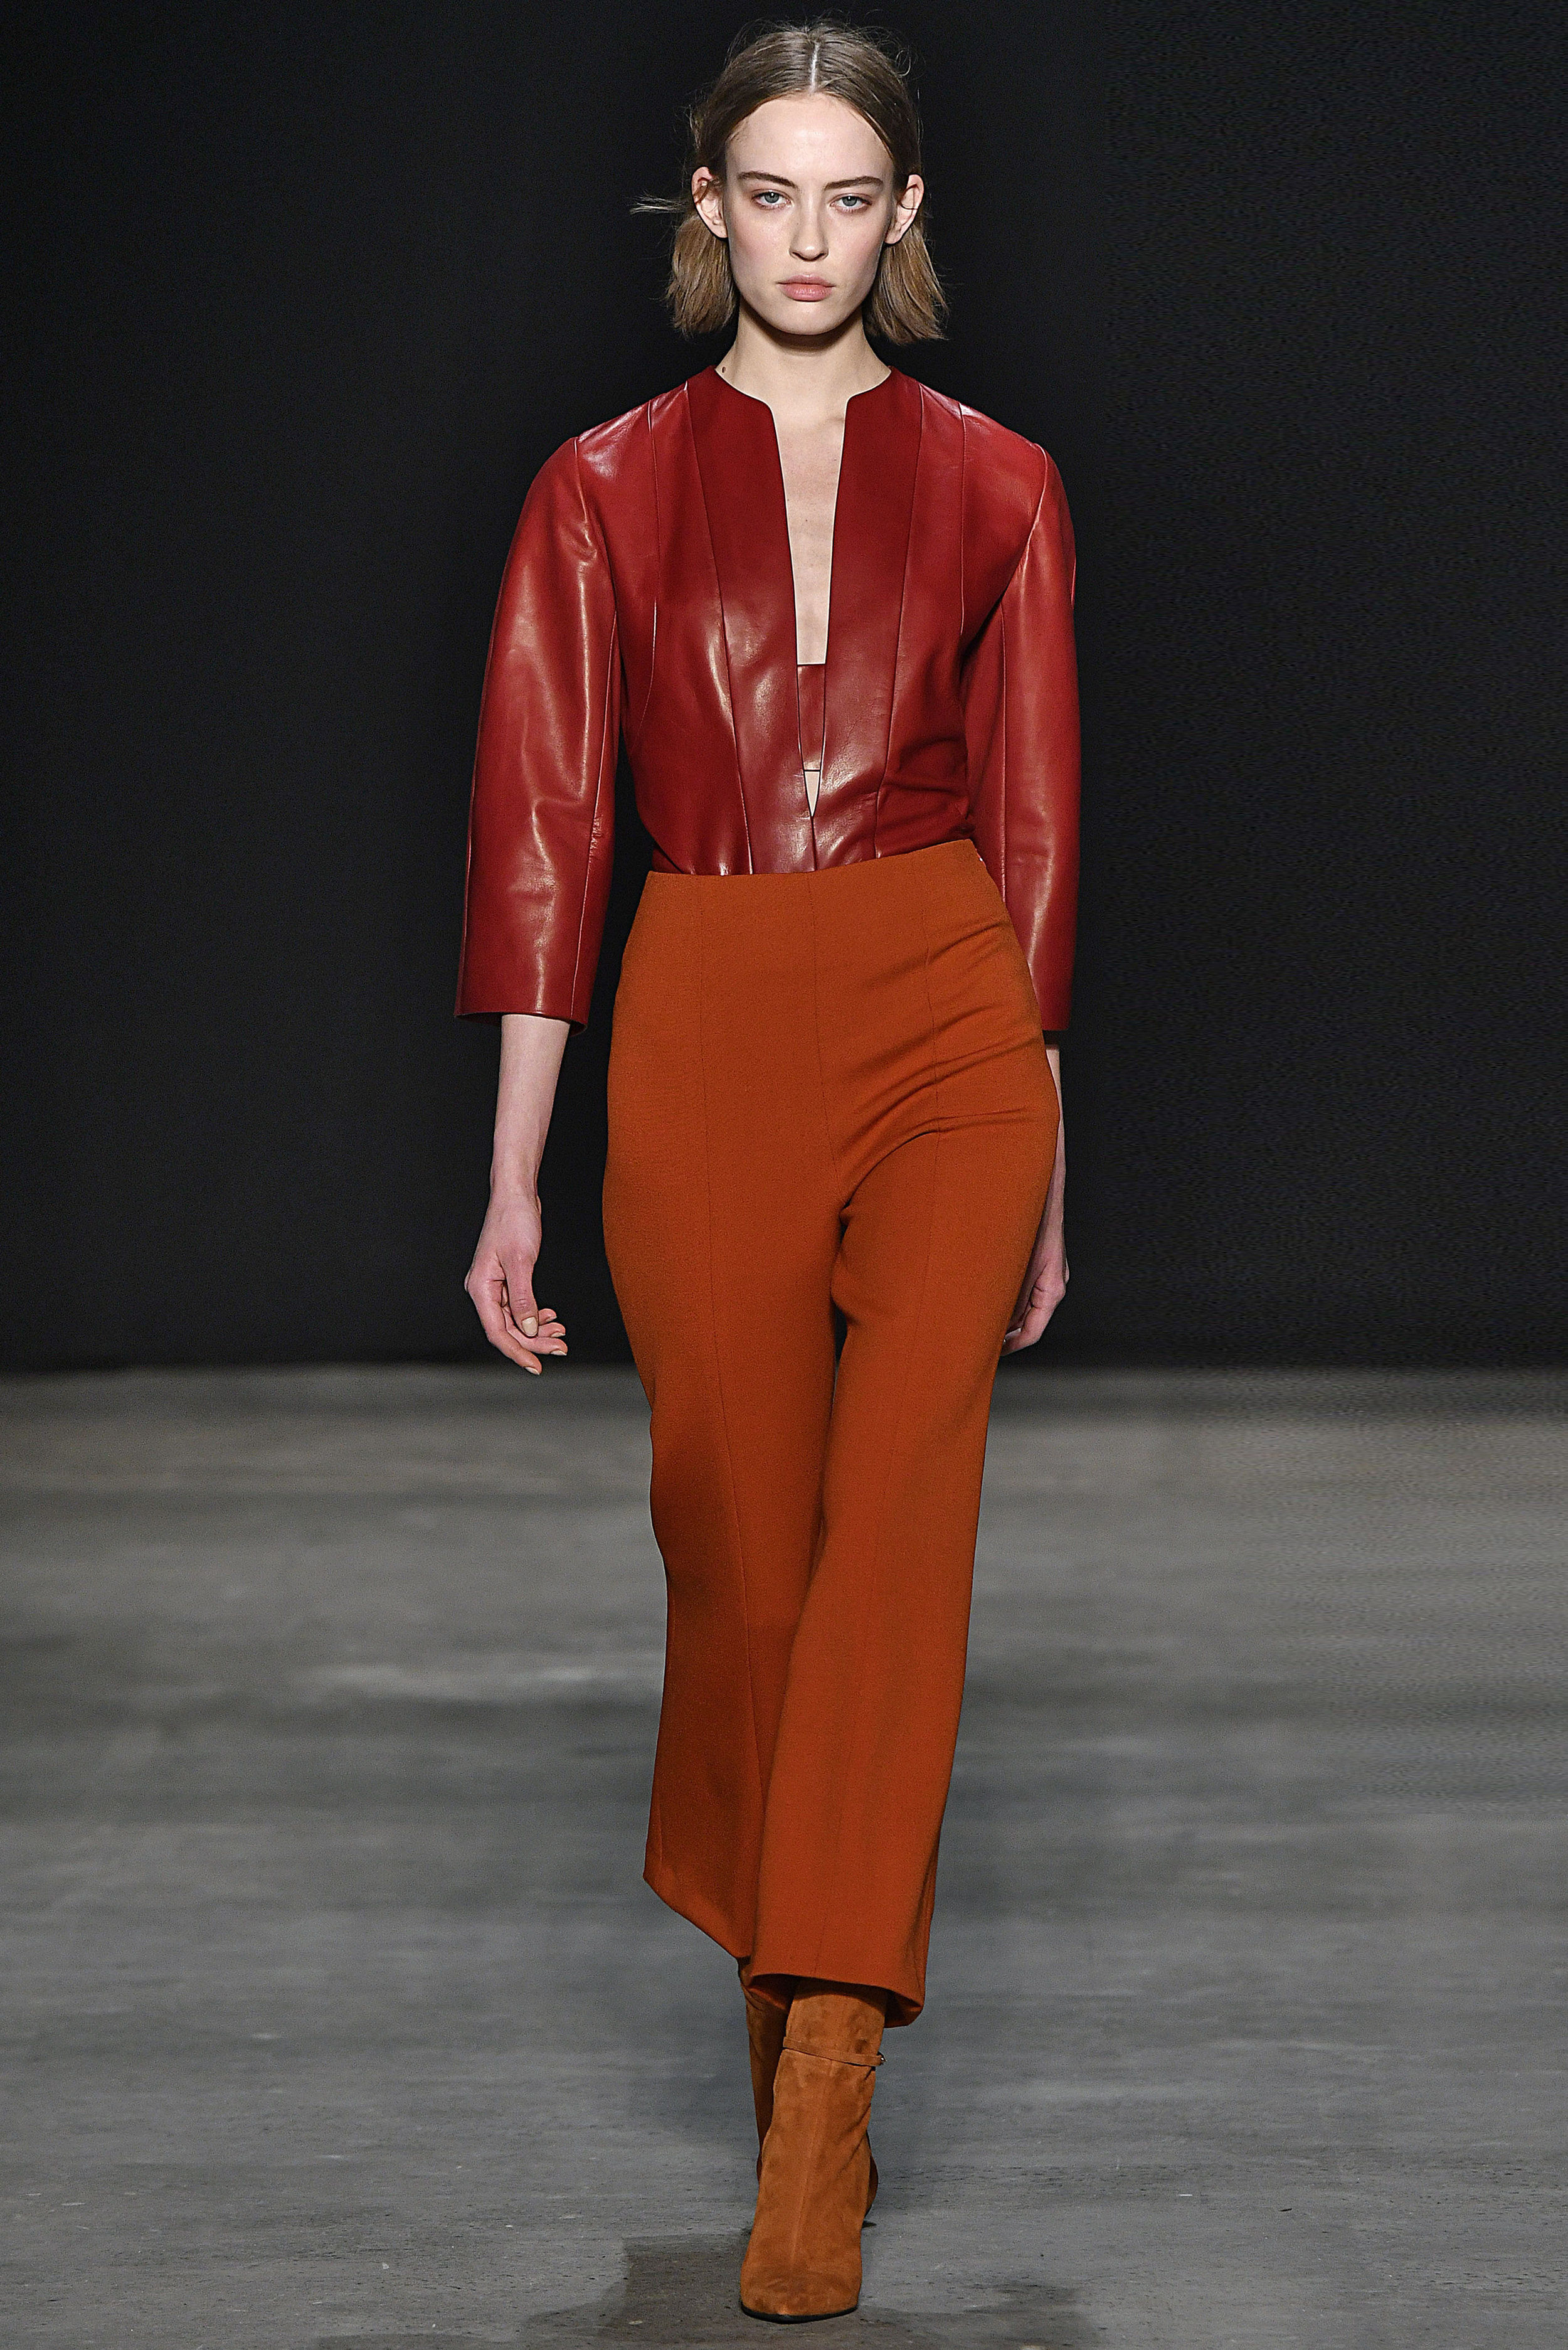 Narciso Rodriguez Fall 2017 collection. Oxblood leather top with crimson wool barathea pant.